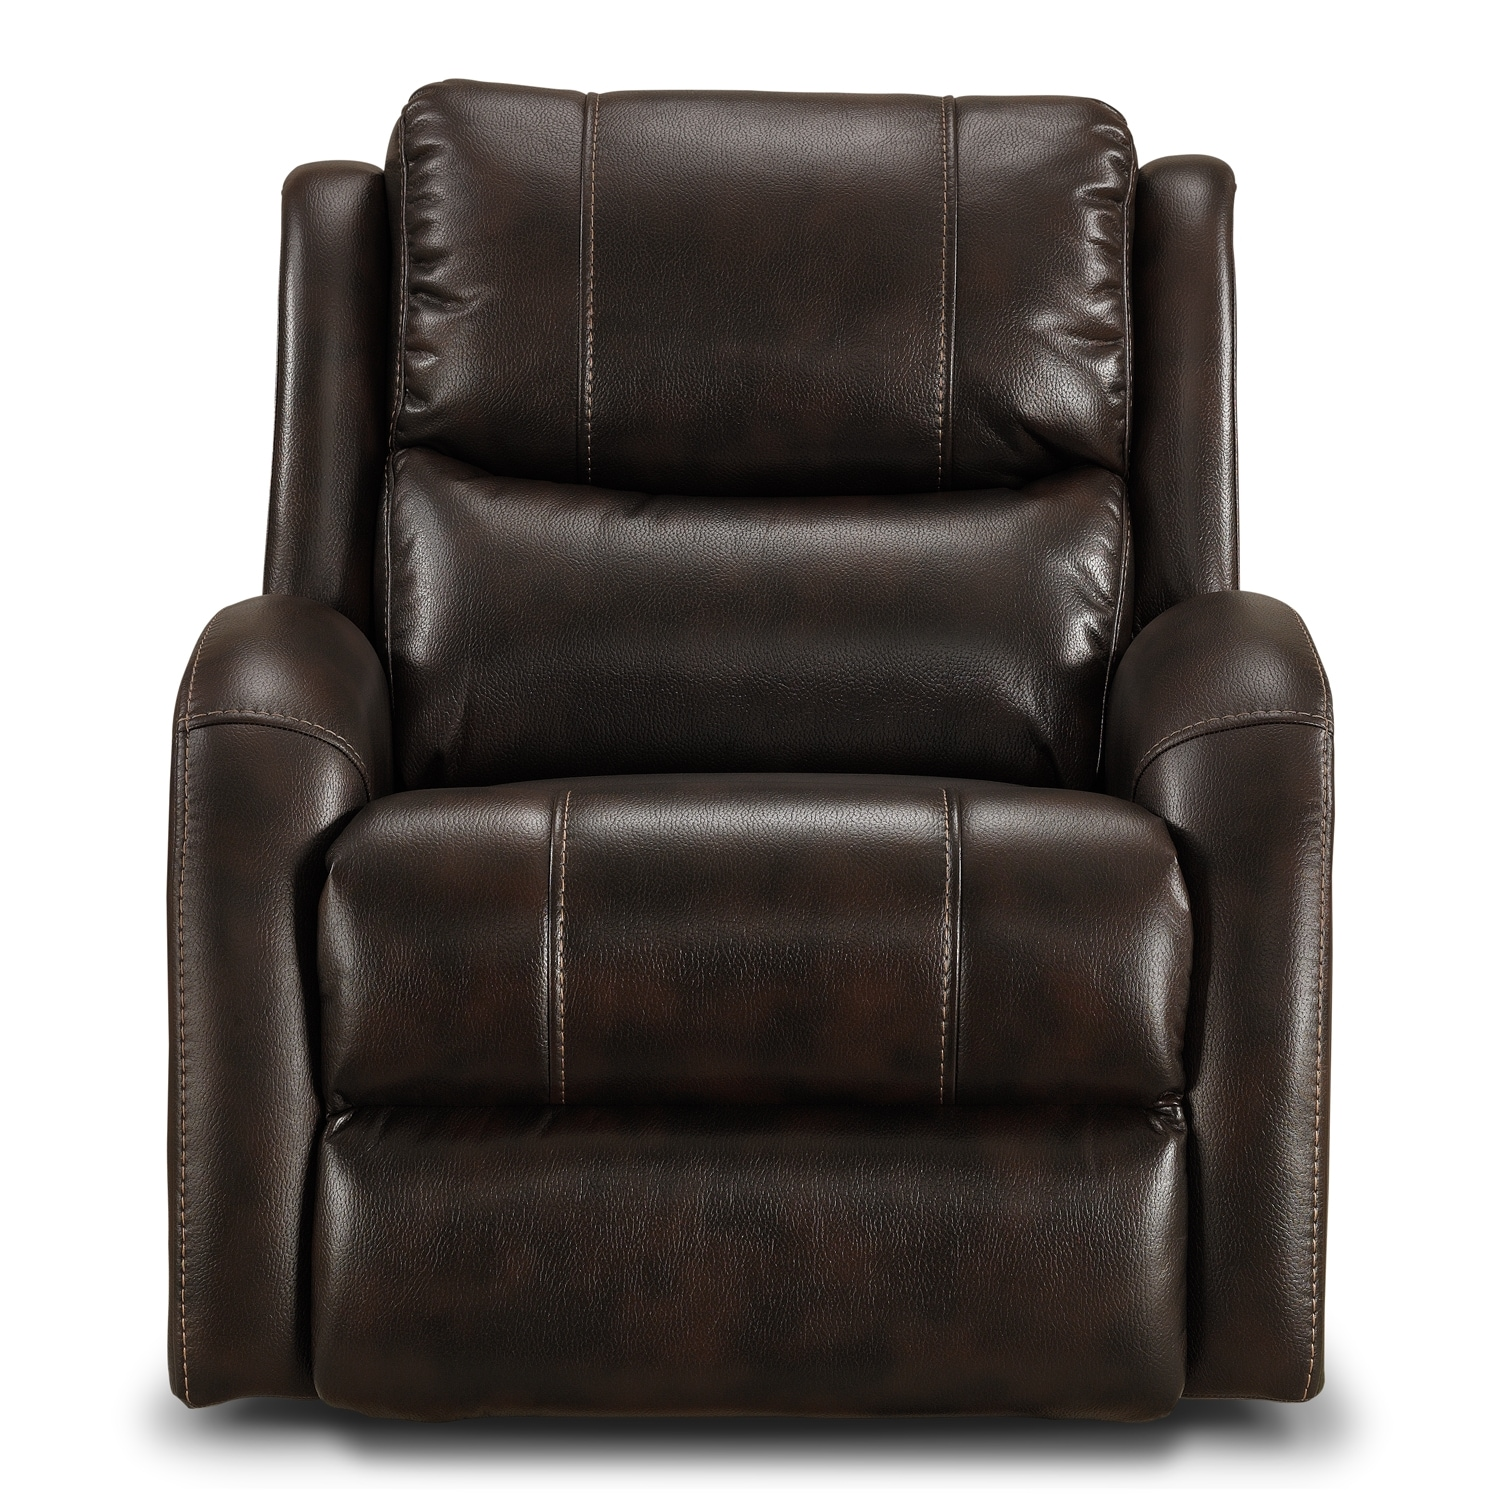 mesmerizing on furniture about city value small recliner ideas recliners